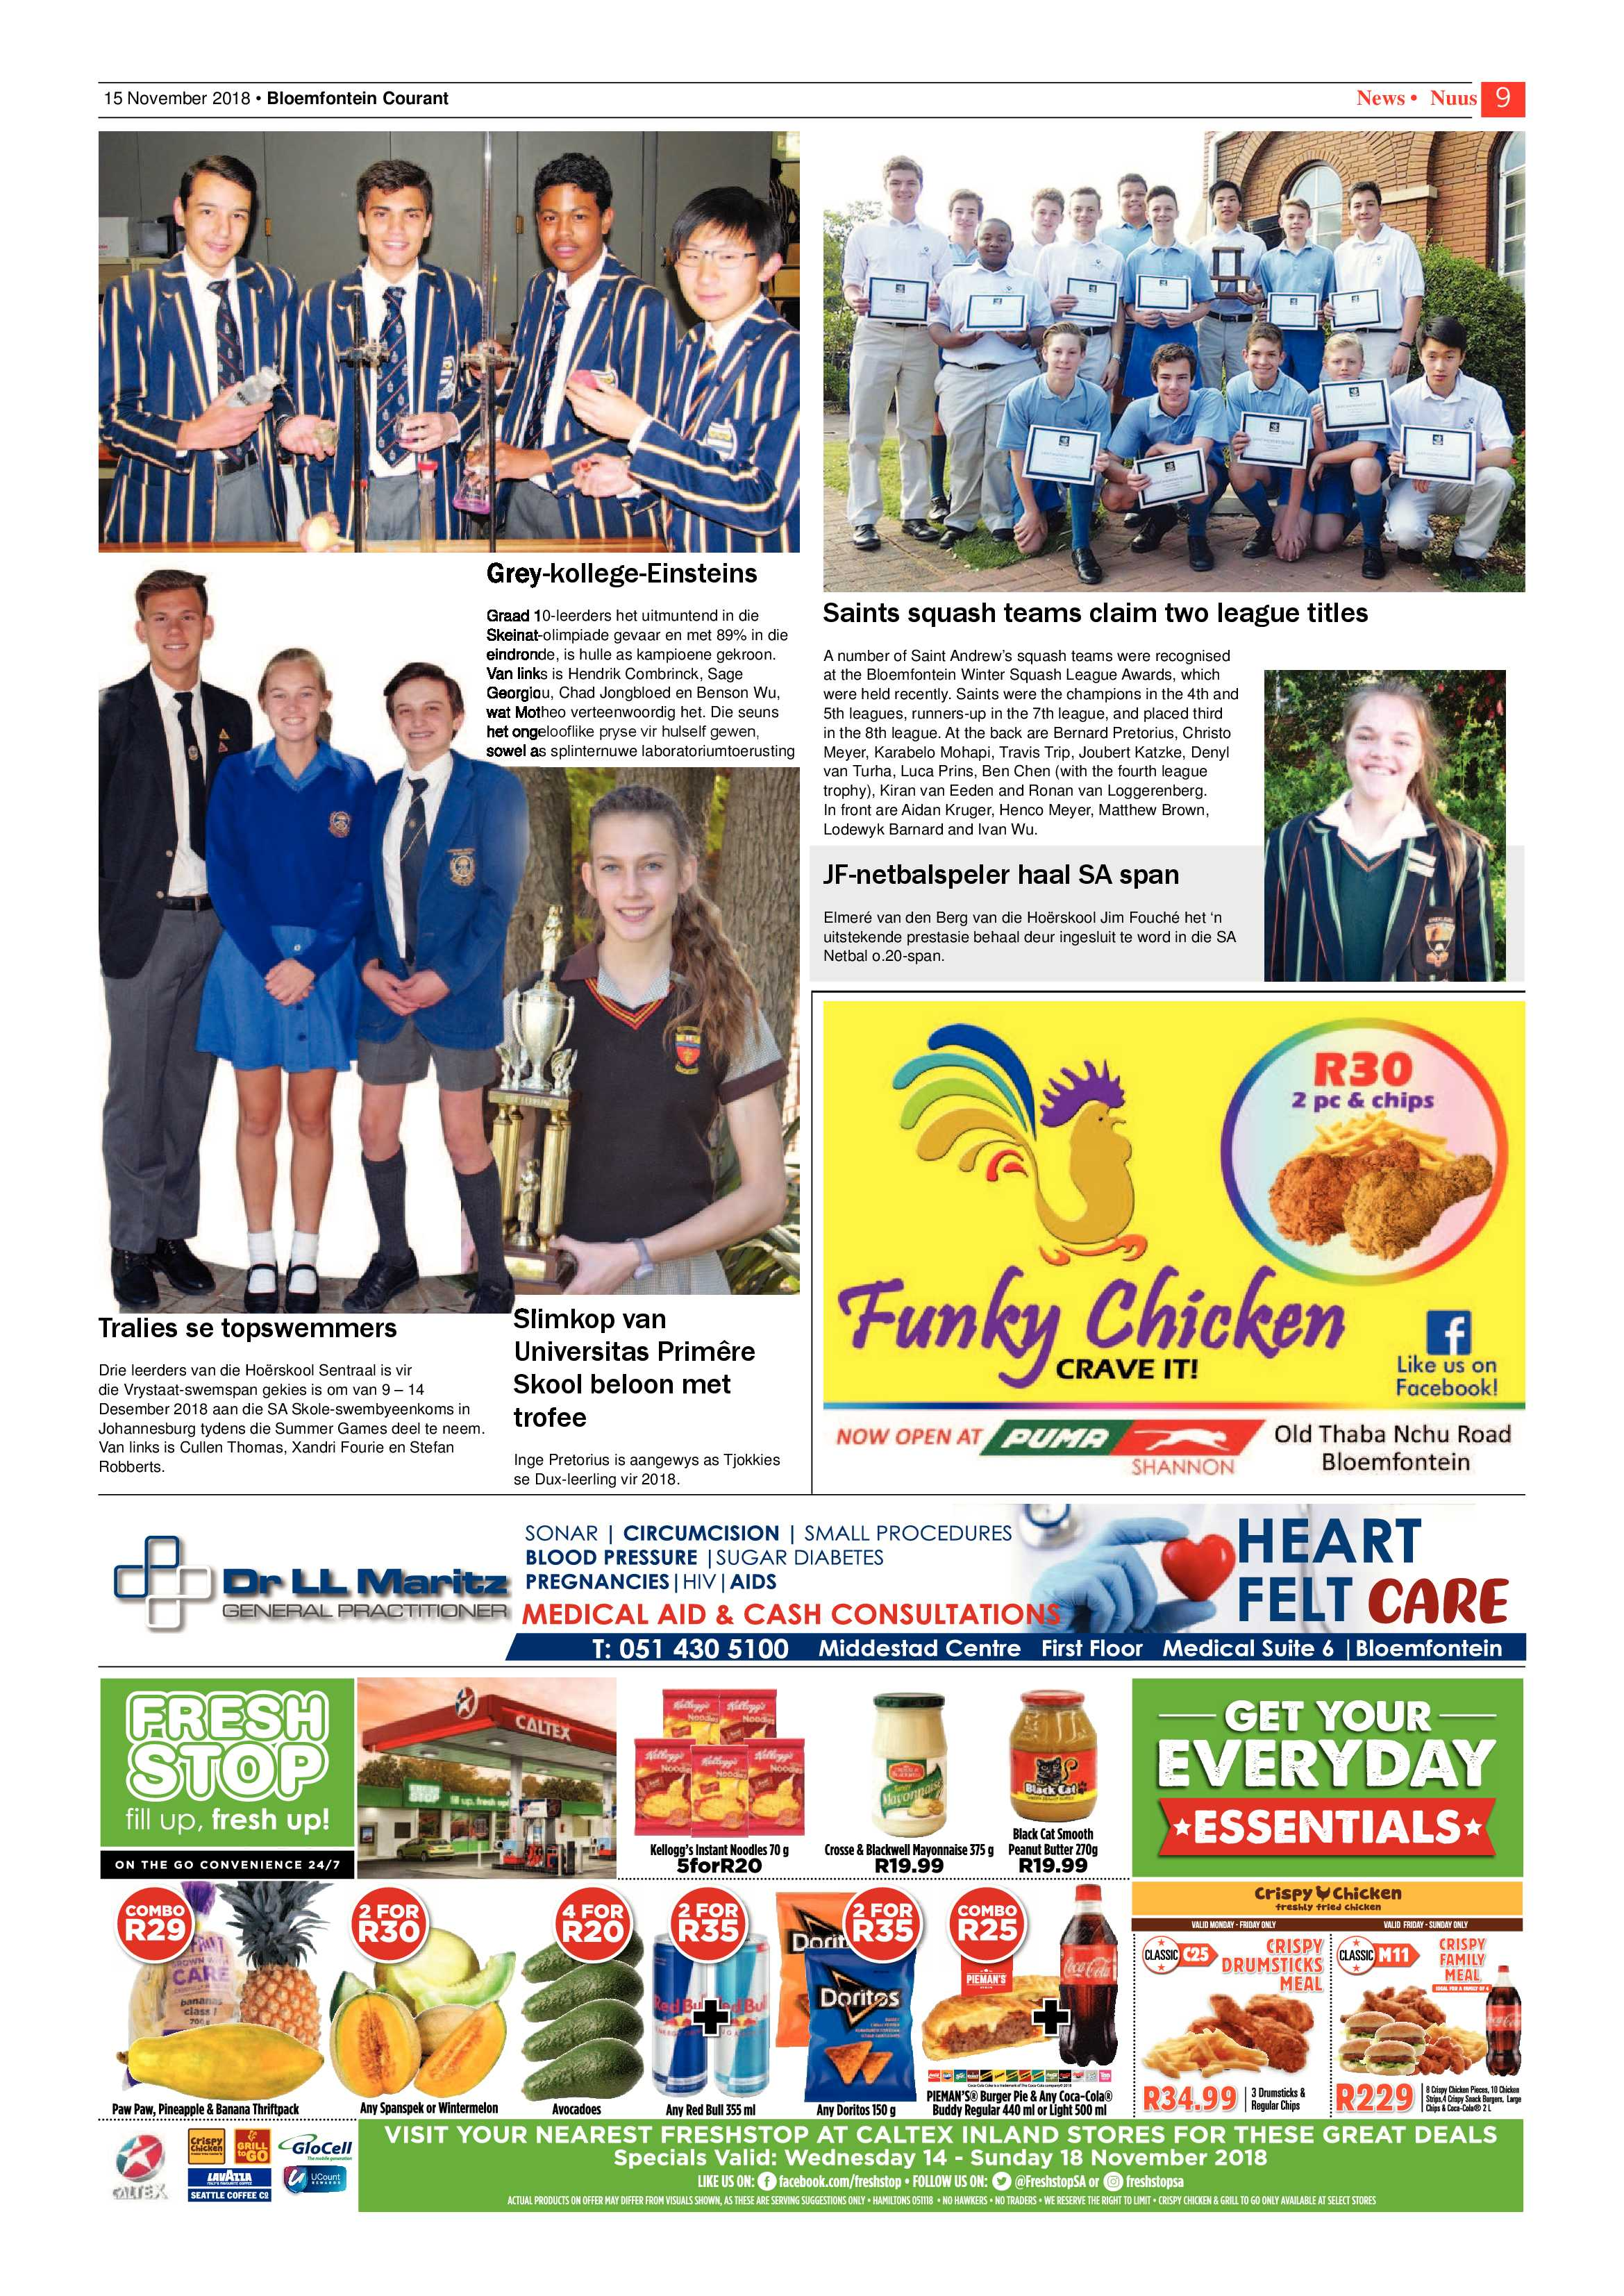 courant-15-november-2018-epapers-page-9